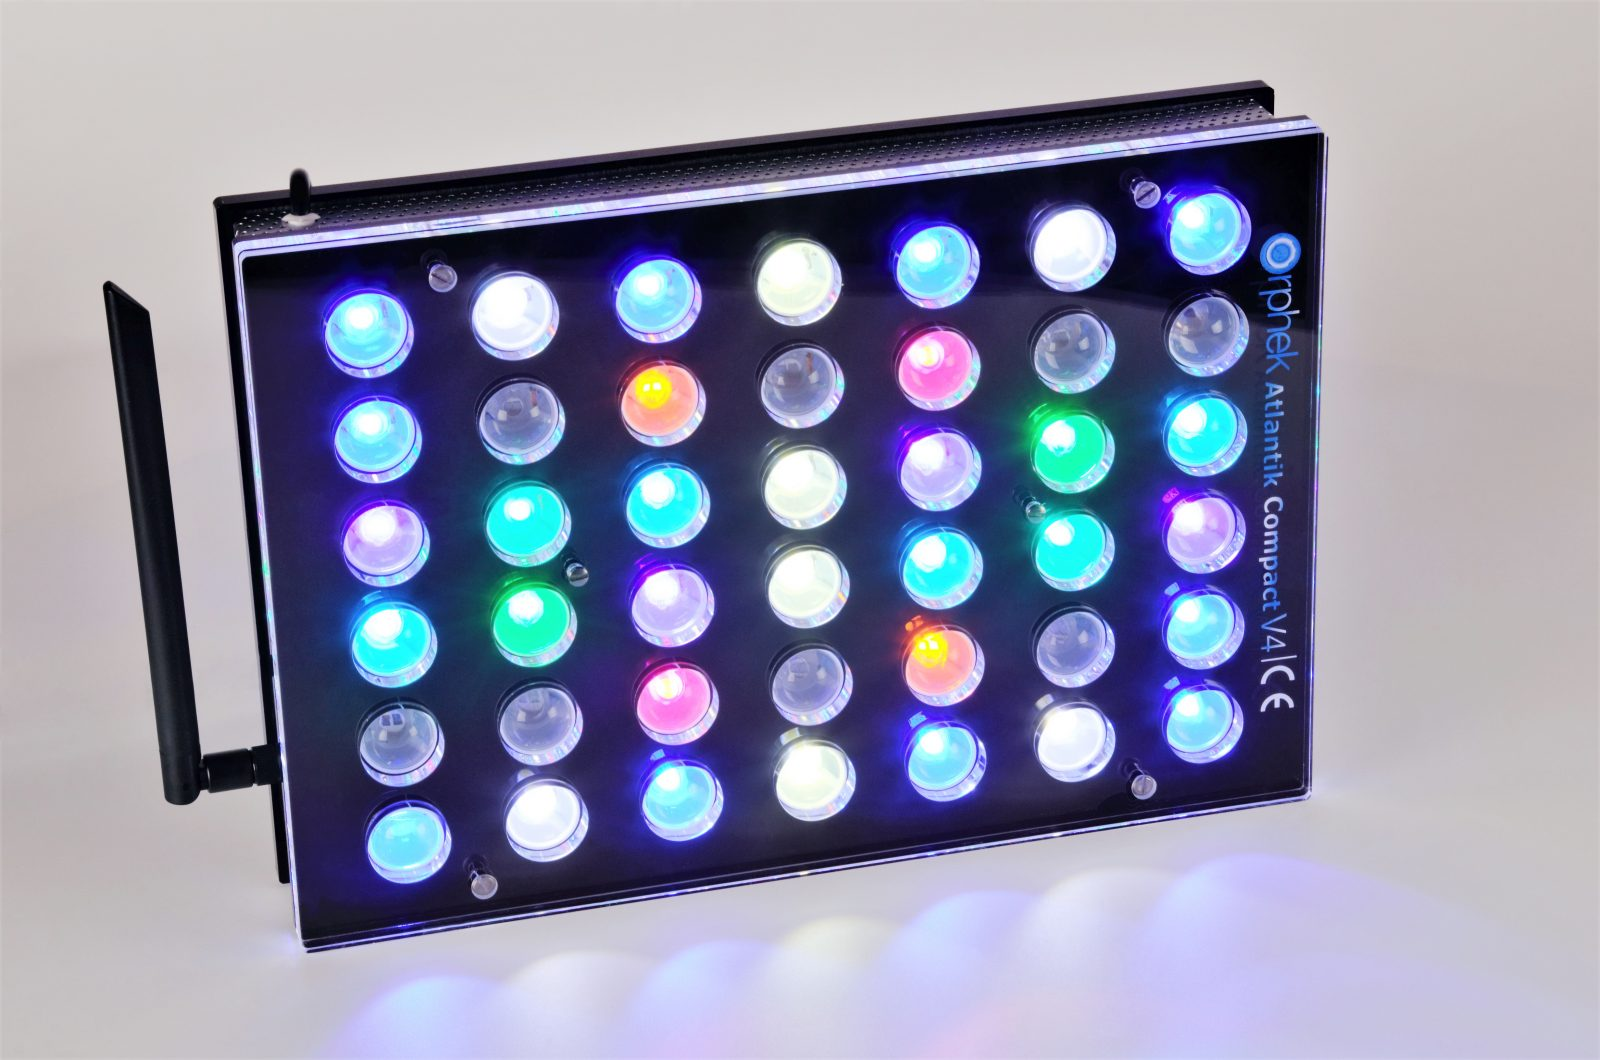 Orphek-Aquarium-LED-Lighting-Atlantik -Compact-V4-light -on -channel 1 + 2 + 4